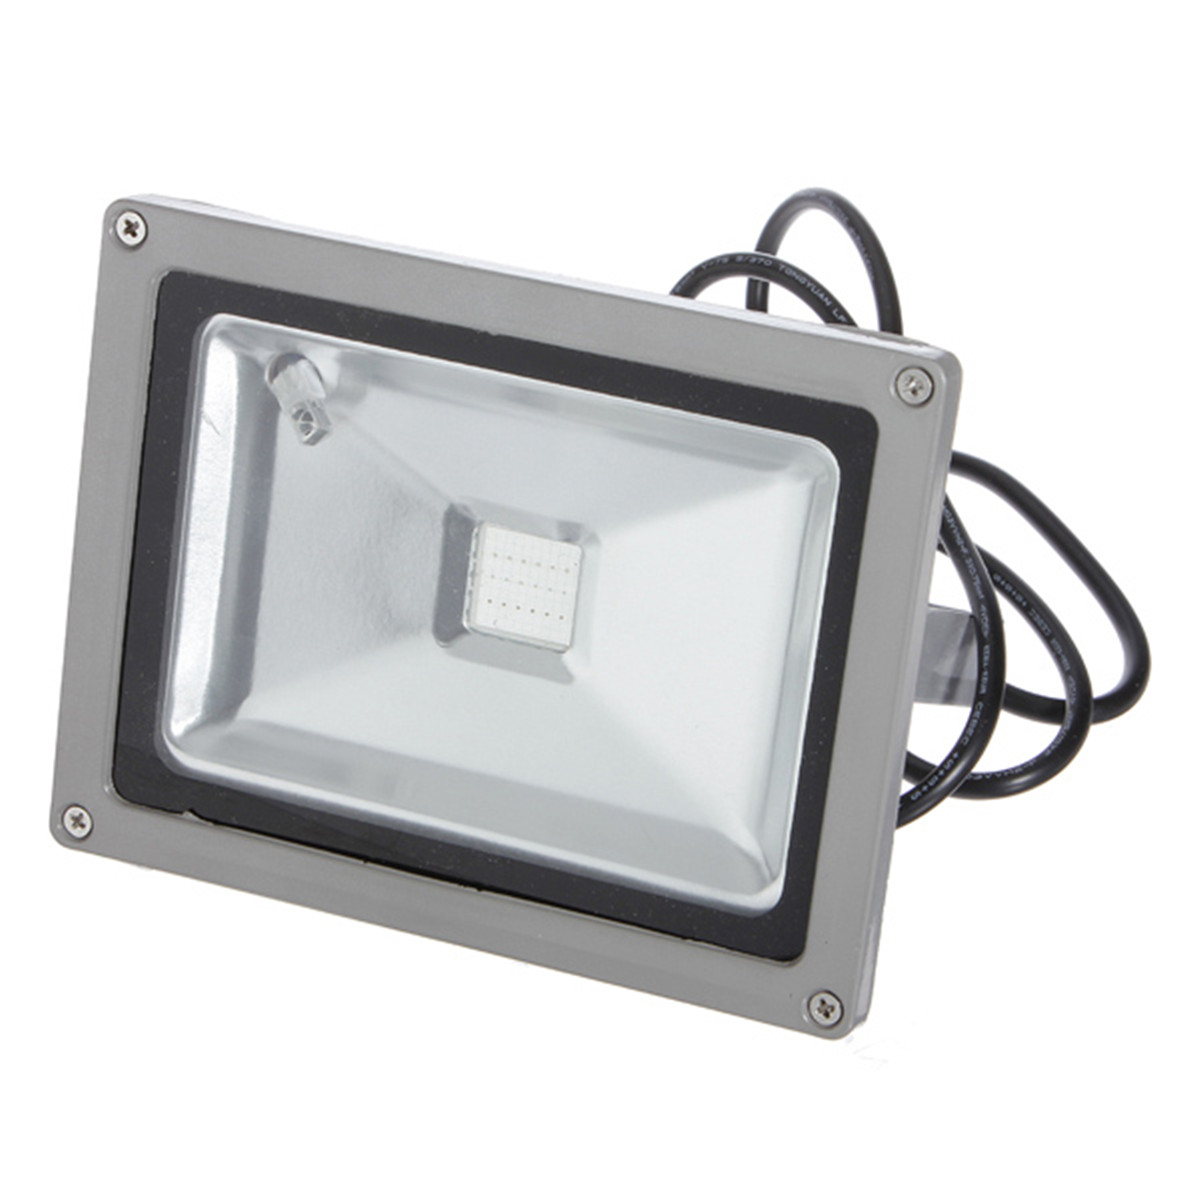 20w led lampe projecteur rgb exterieur lumiere ip65 for Lampes exterieur